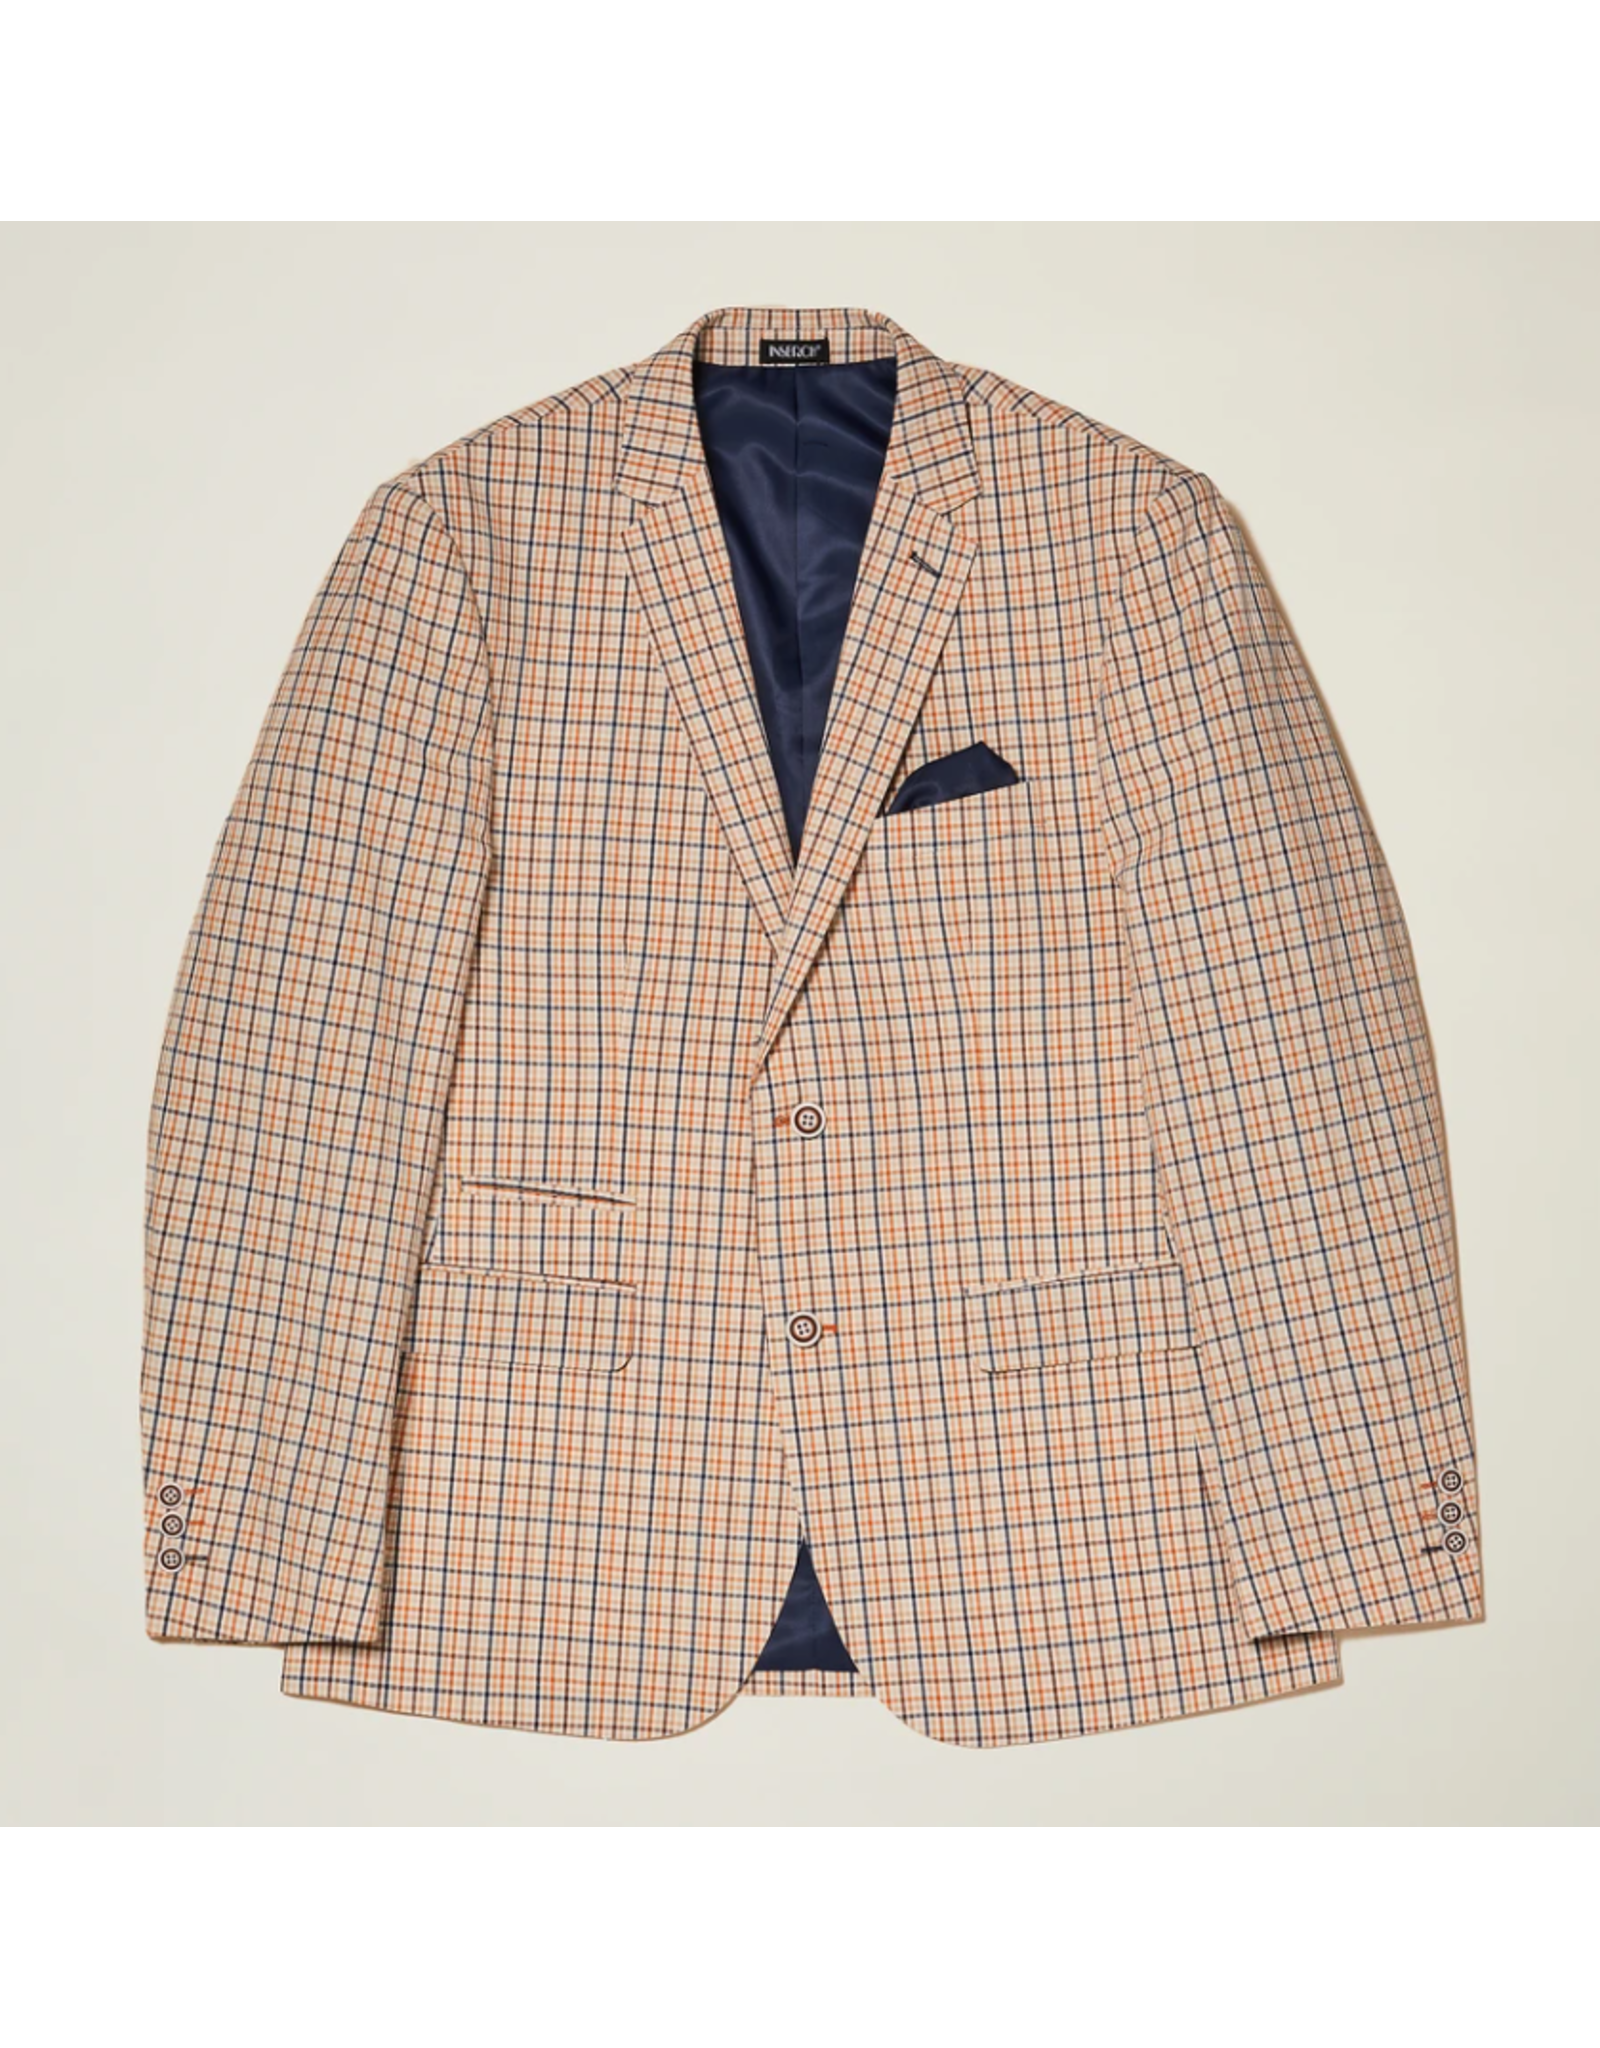 Inserch Inserch Blazer - BL524 Rust/Blue Plaid